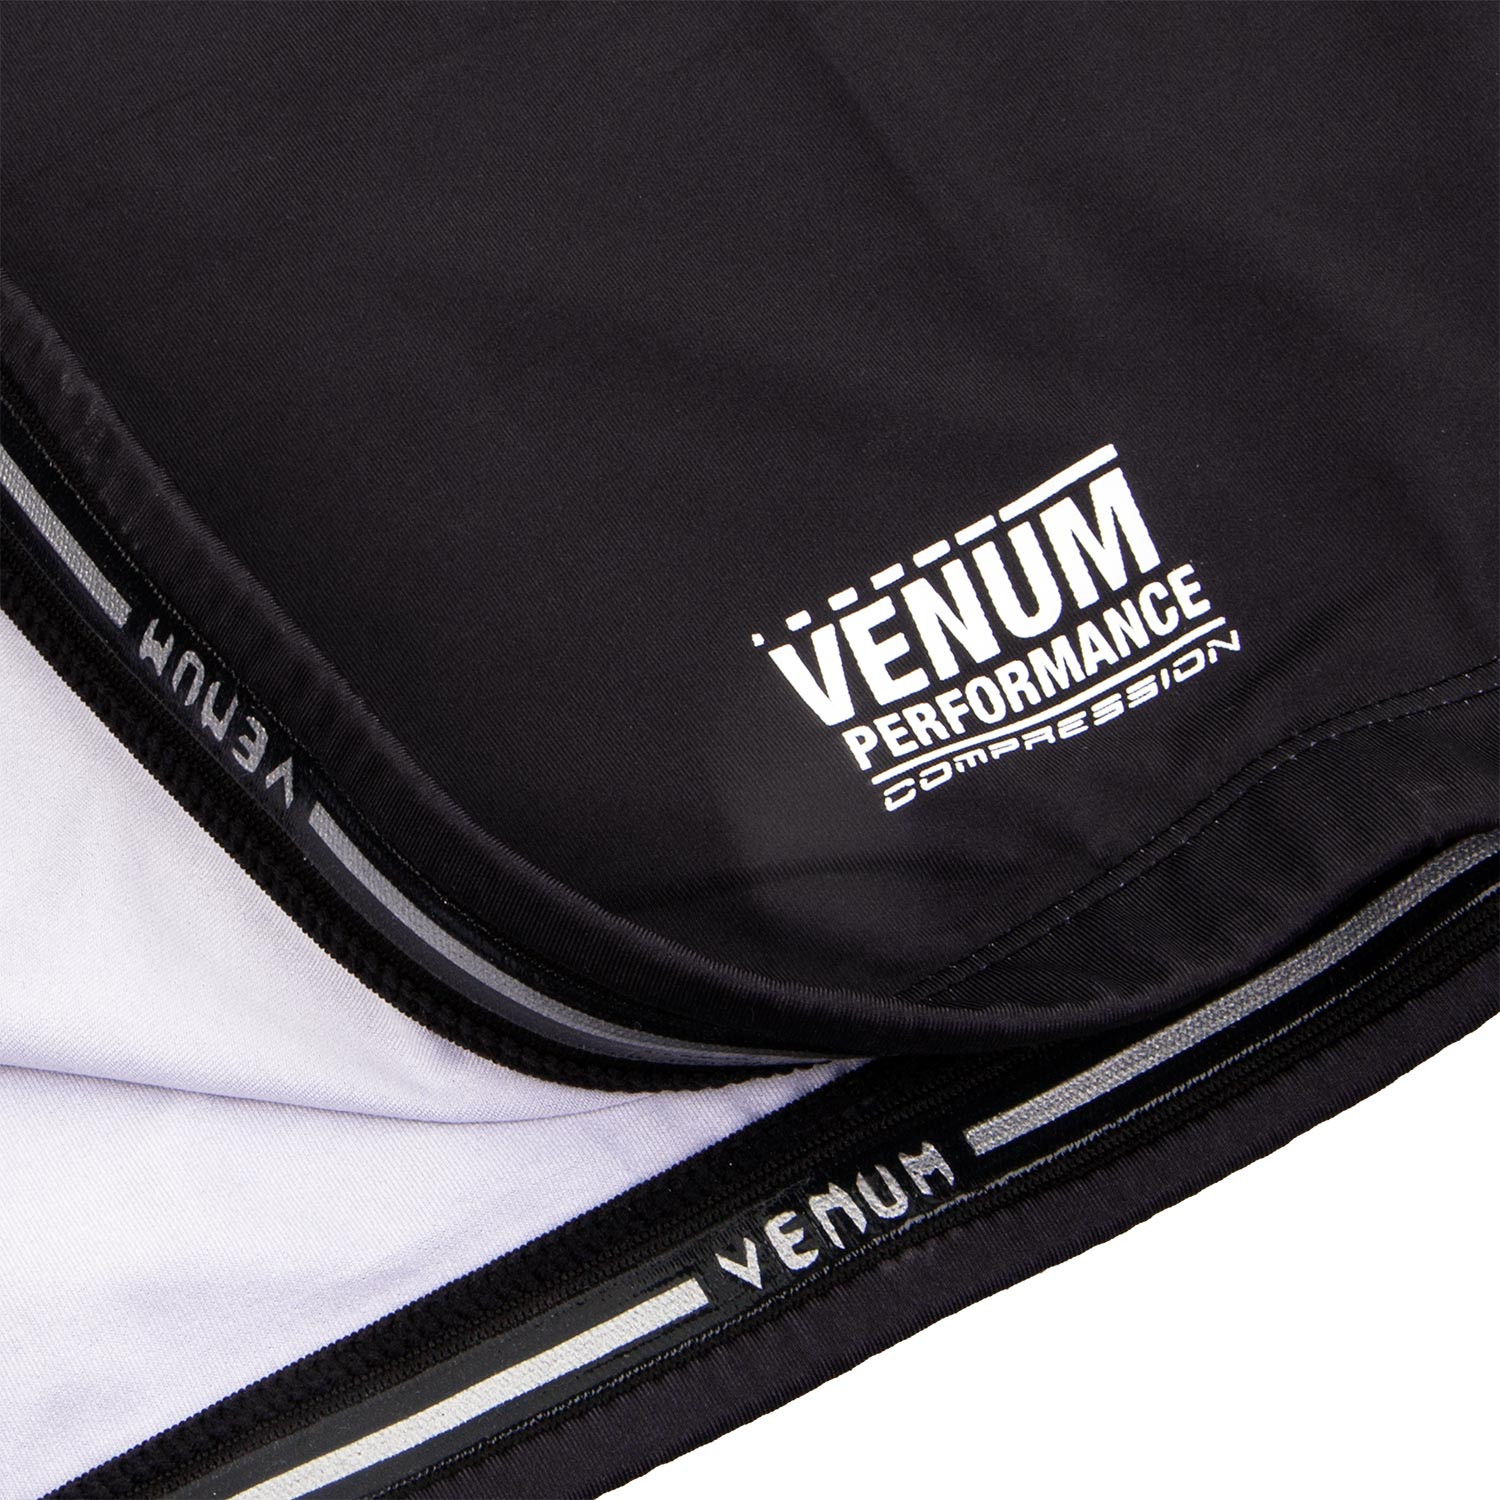 New - Venum Men s Contender 3.0 Short Sleeve Compression Tee Shirt  Black White - Walmart.com b8369e48d